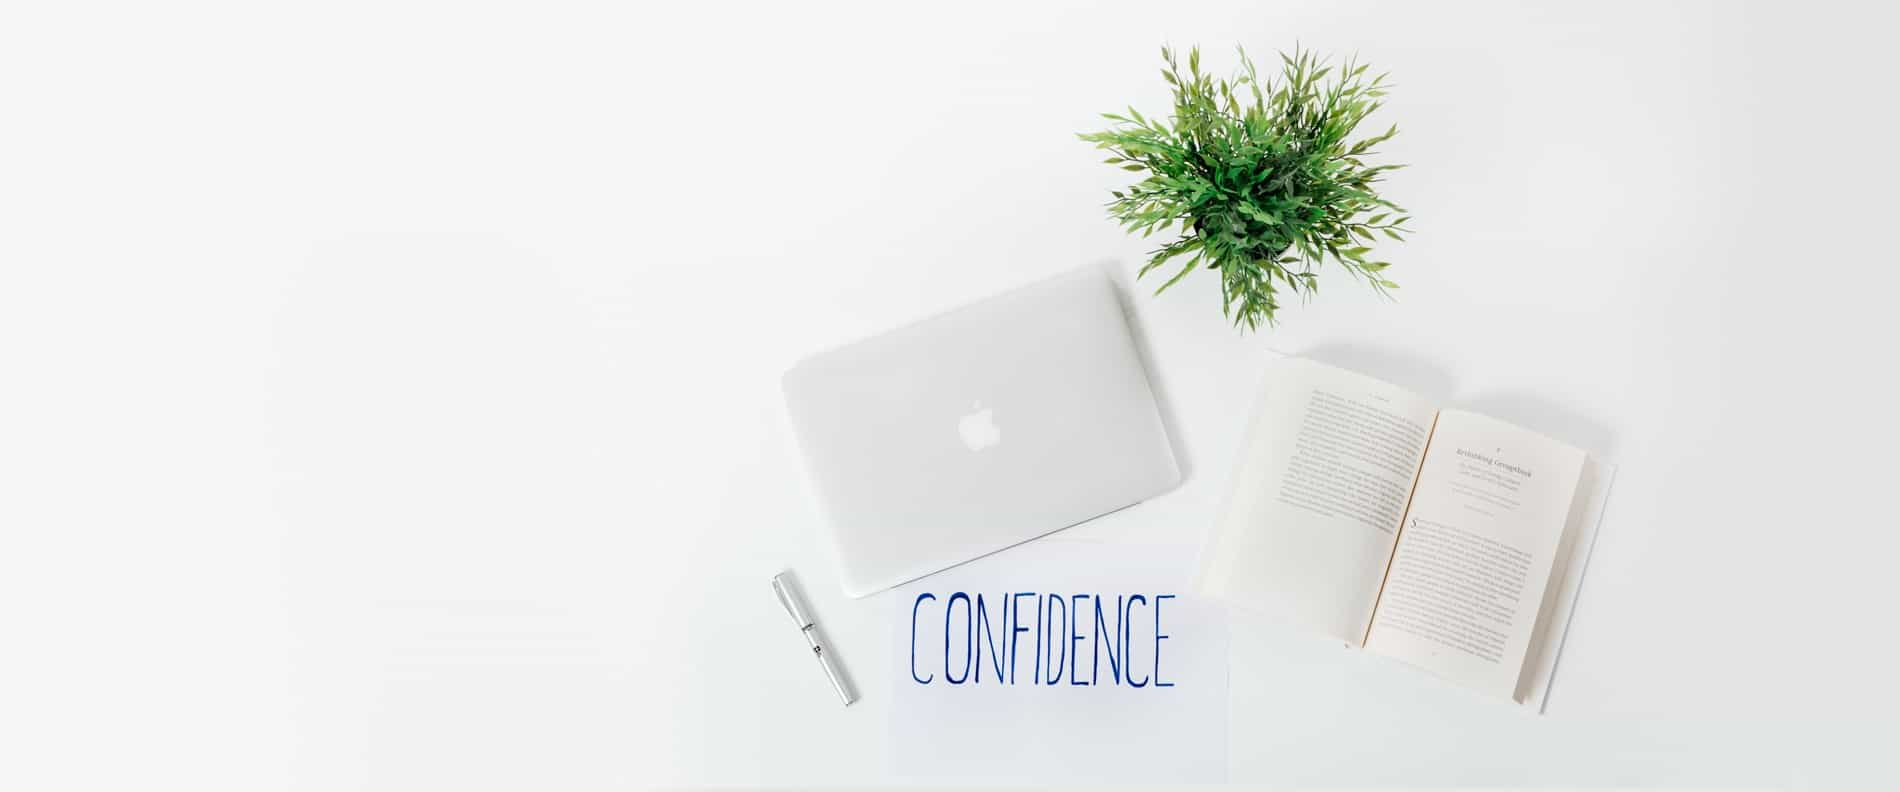 Interested in reading more about confidence? Explore our list of 10 books on confidence that can change your career!